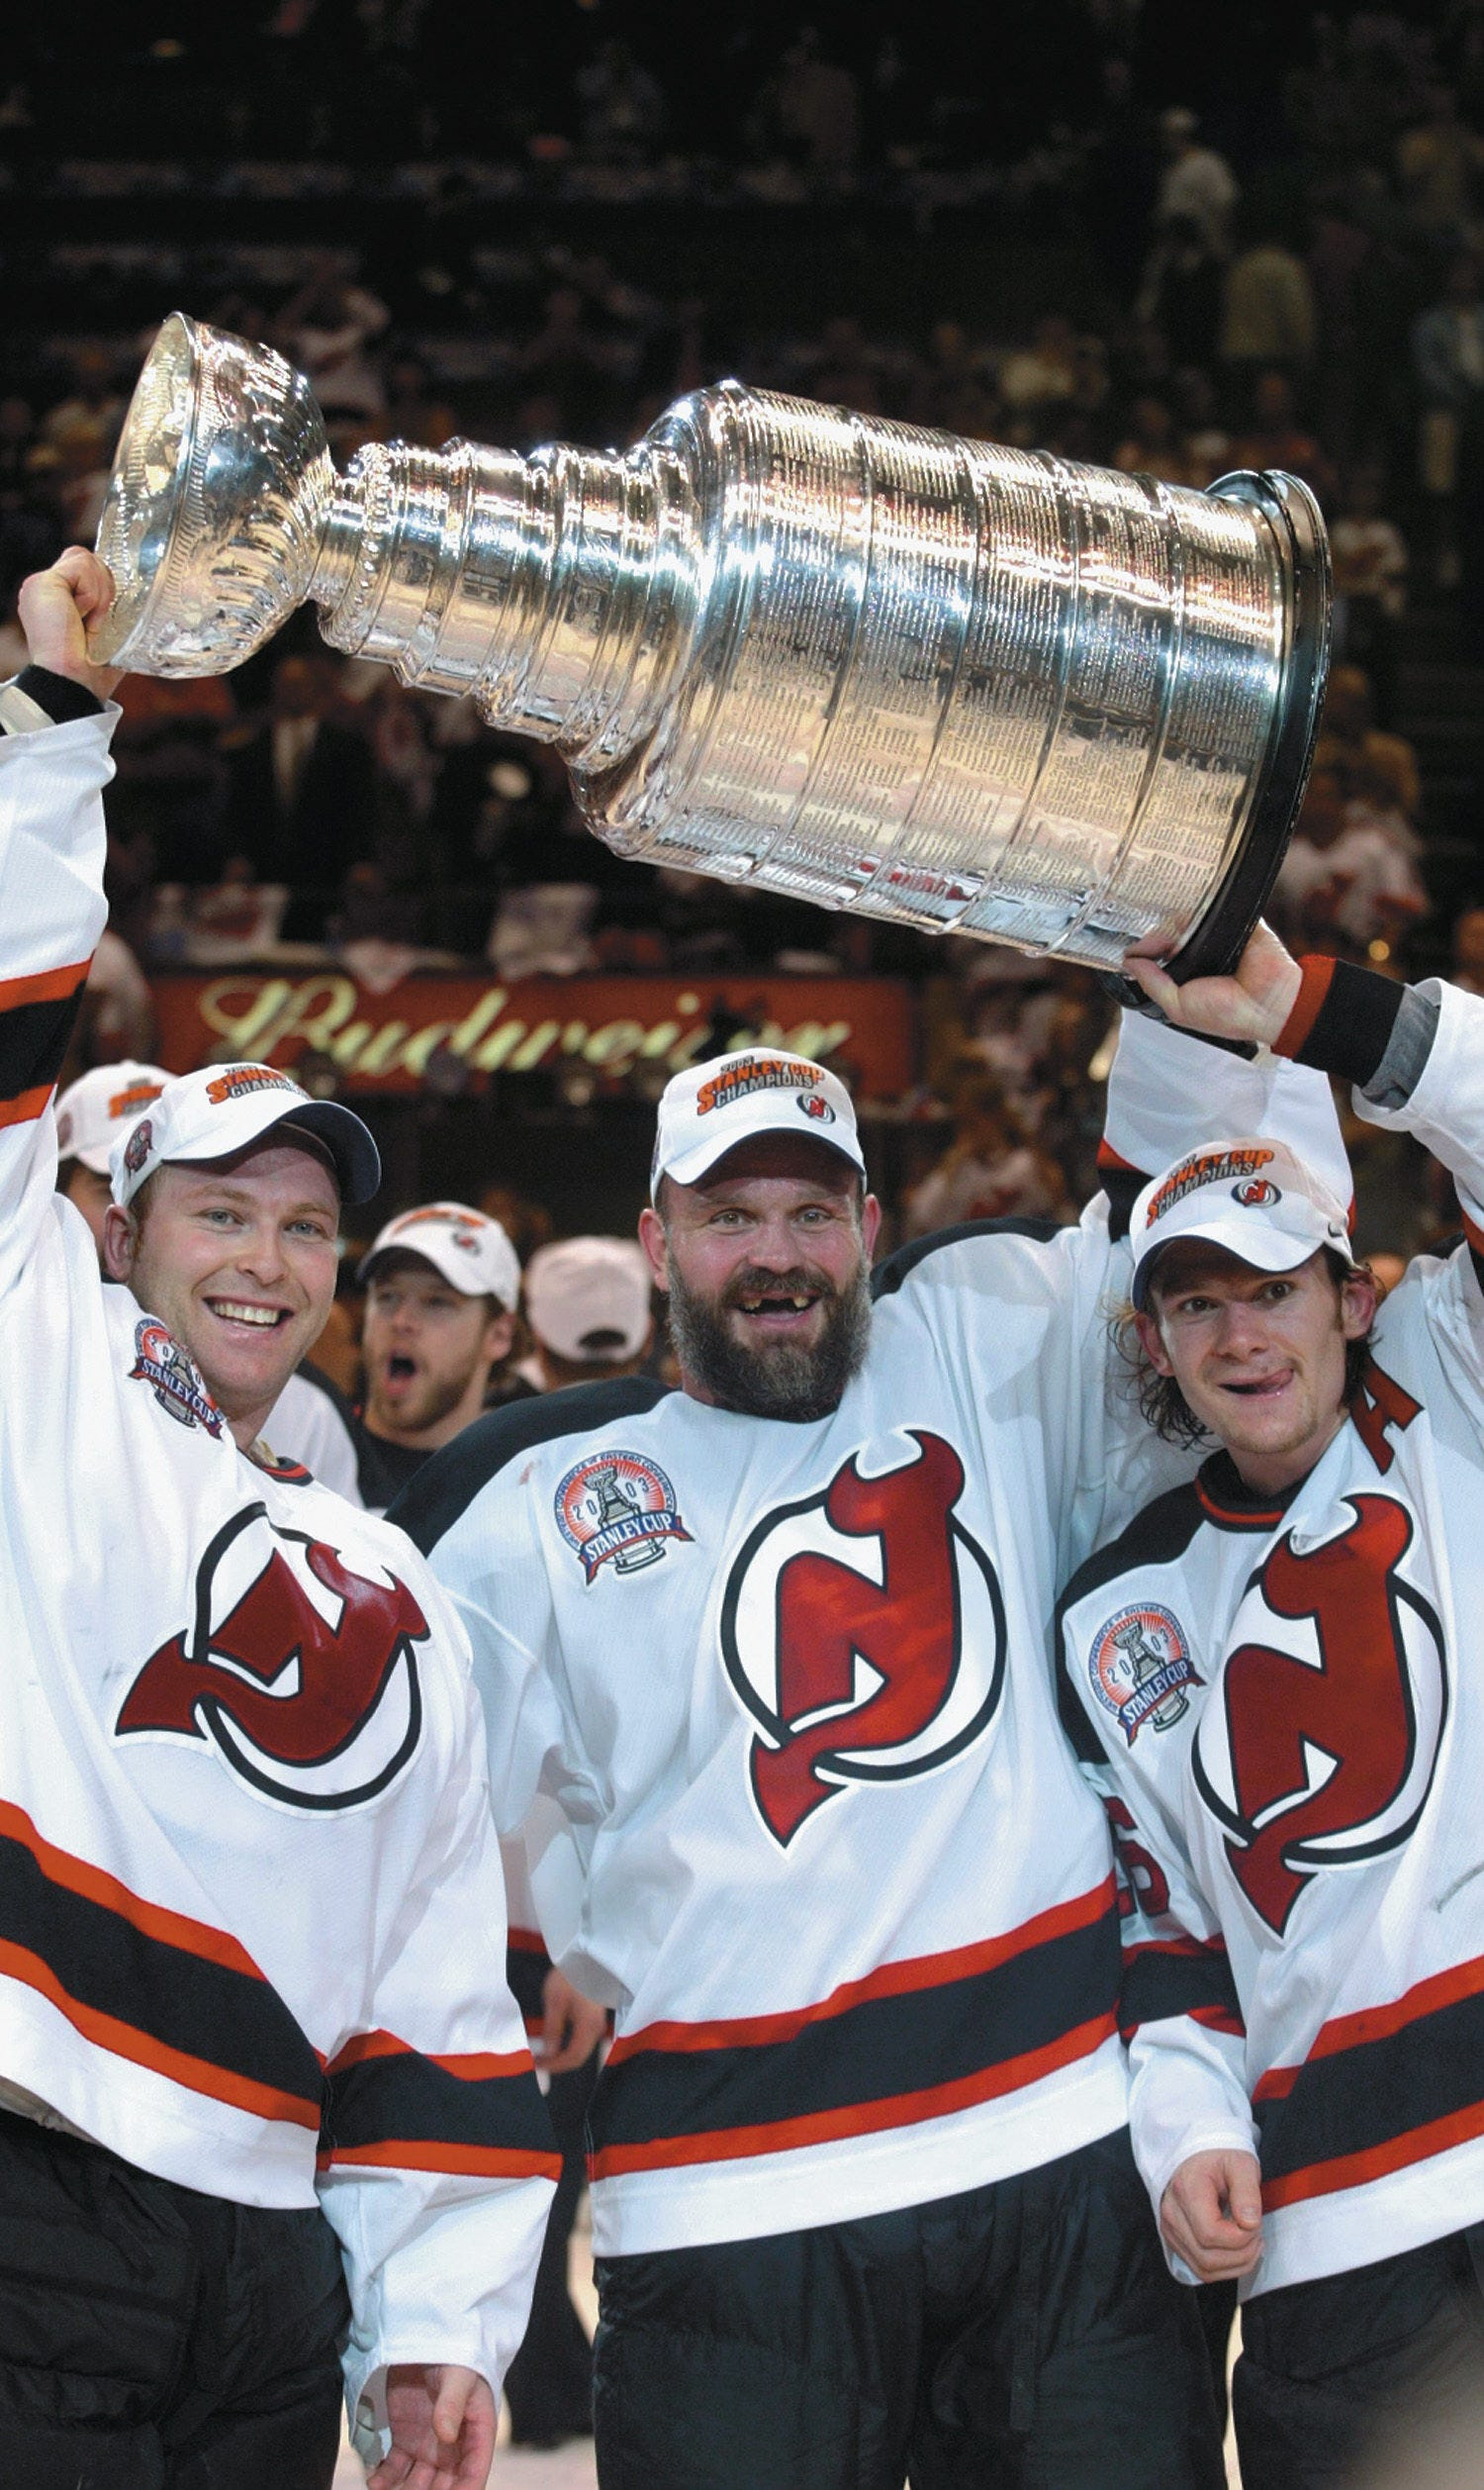 Hall of Fame goalie Martin Brodeur revolutionized how position was played